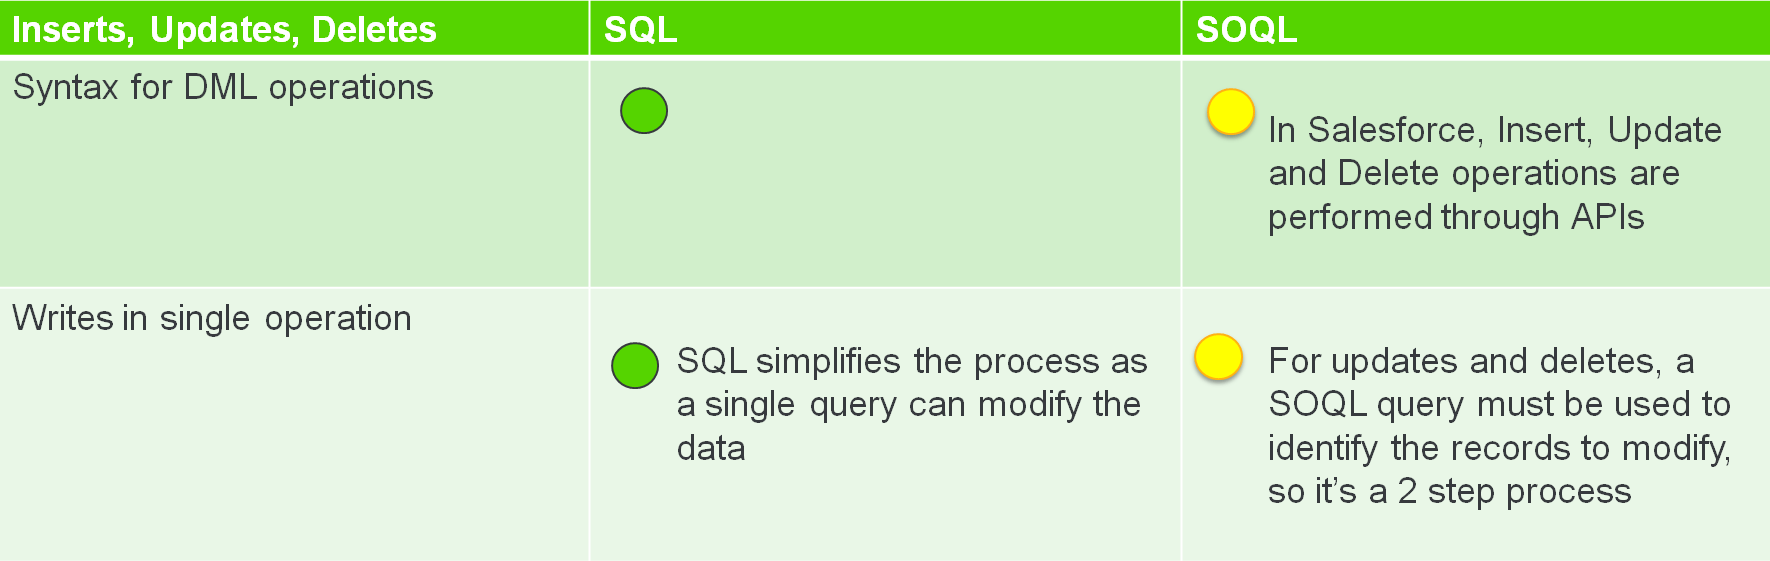 SQL or SOQL for Your Next Salesforce Analytics Project? - DZone Database